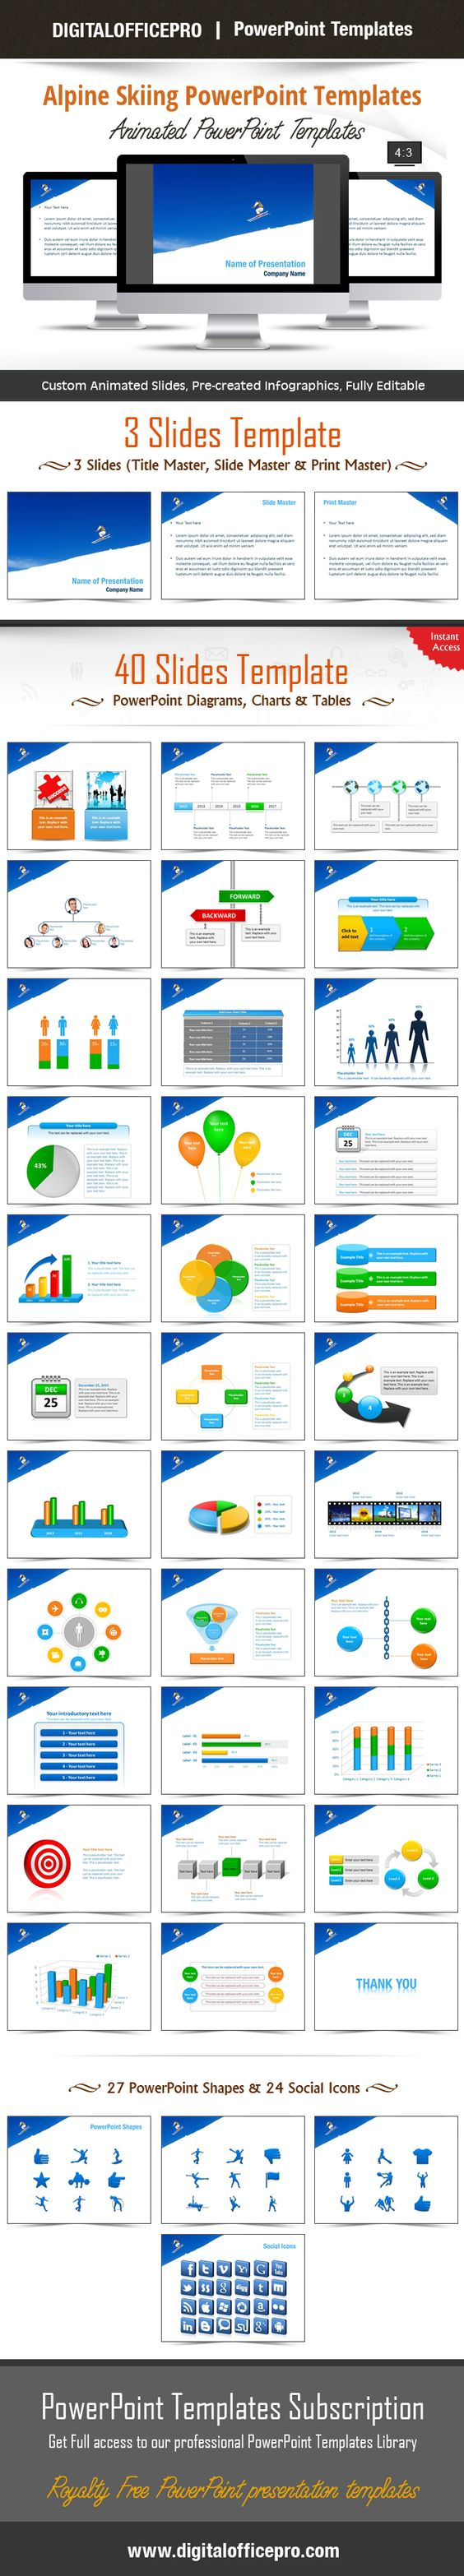 Impress and Engage your audience with Alpine Skiing PowerPoint Template and Alpine Skiing PowerPoint Backgrounds from DigitalOfficePro. Each template comes with a set of PowerPoint Diagrams, Charts & Shapes and are available for instant download.